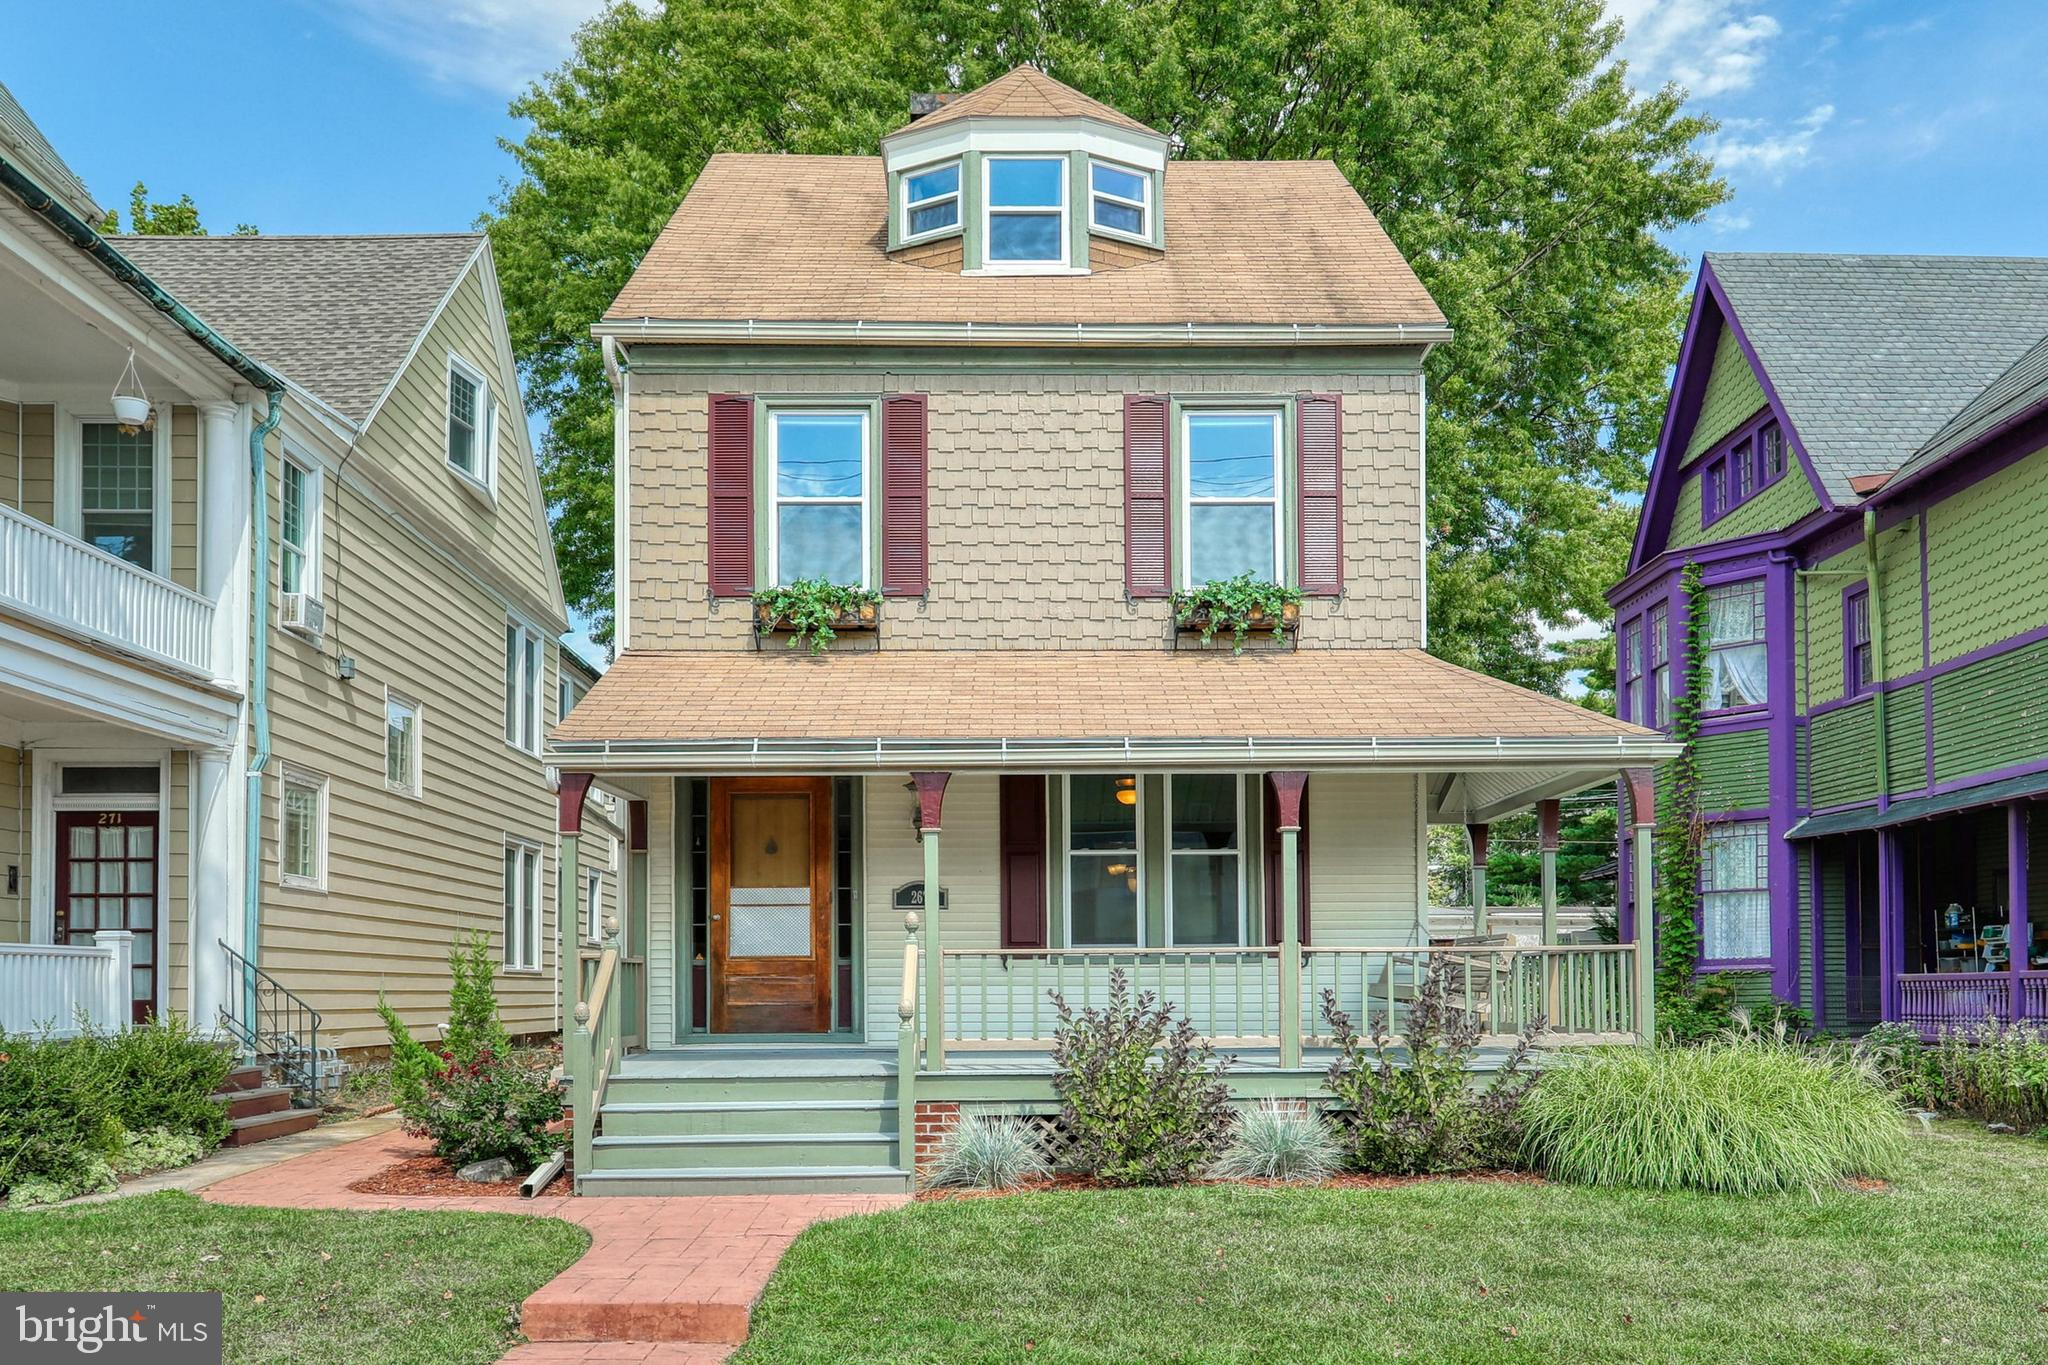 267 N HARTLEY STREET, YORK, PA 17401